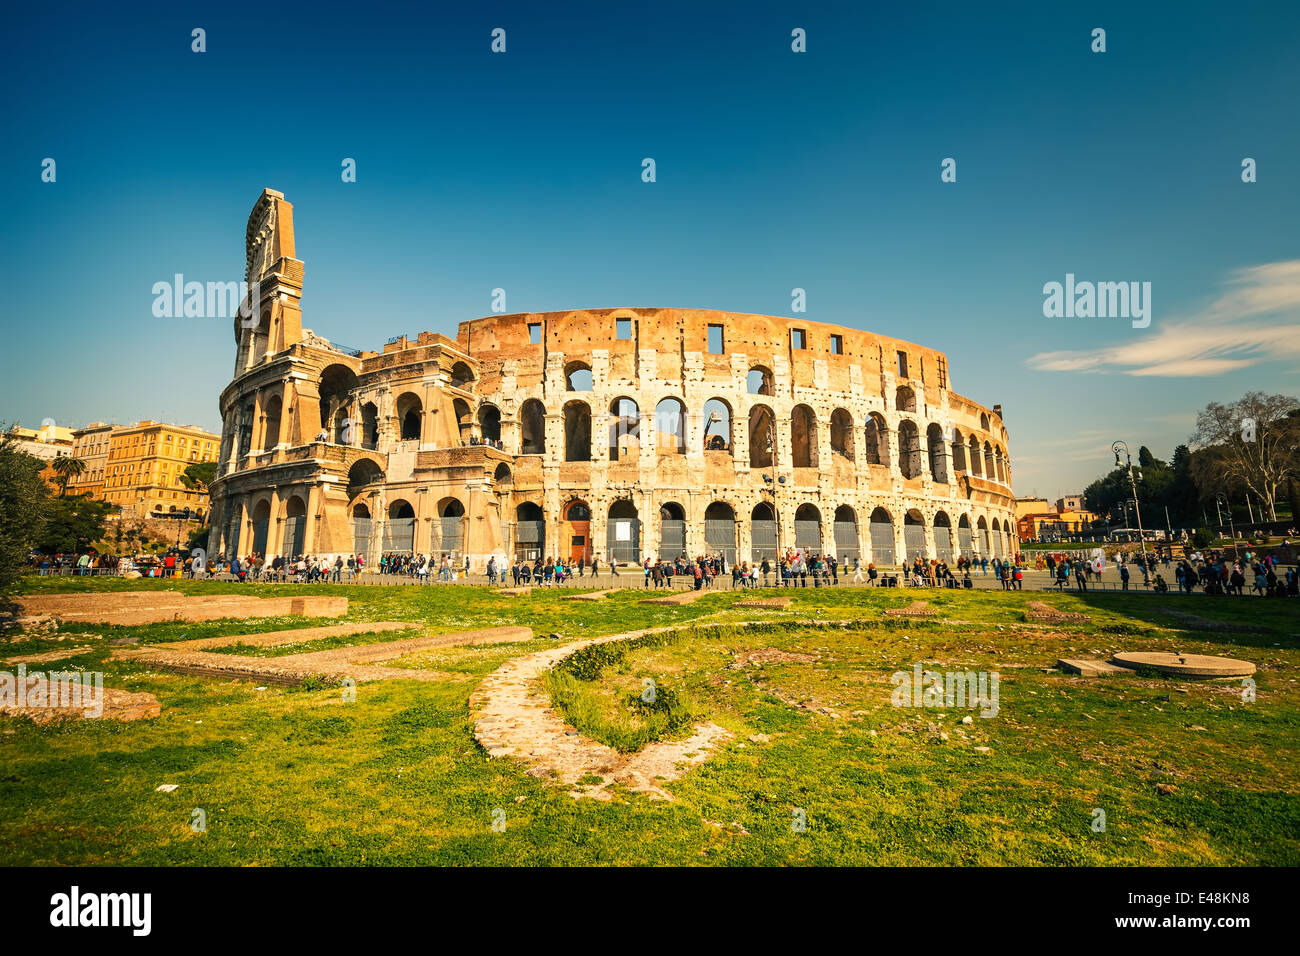 Coliseum in Rome - Stock Image